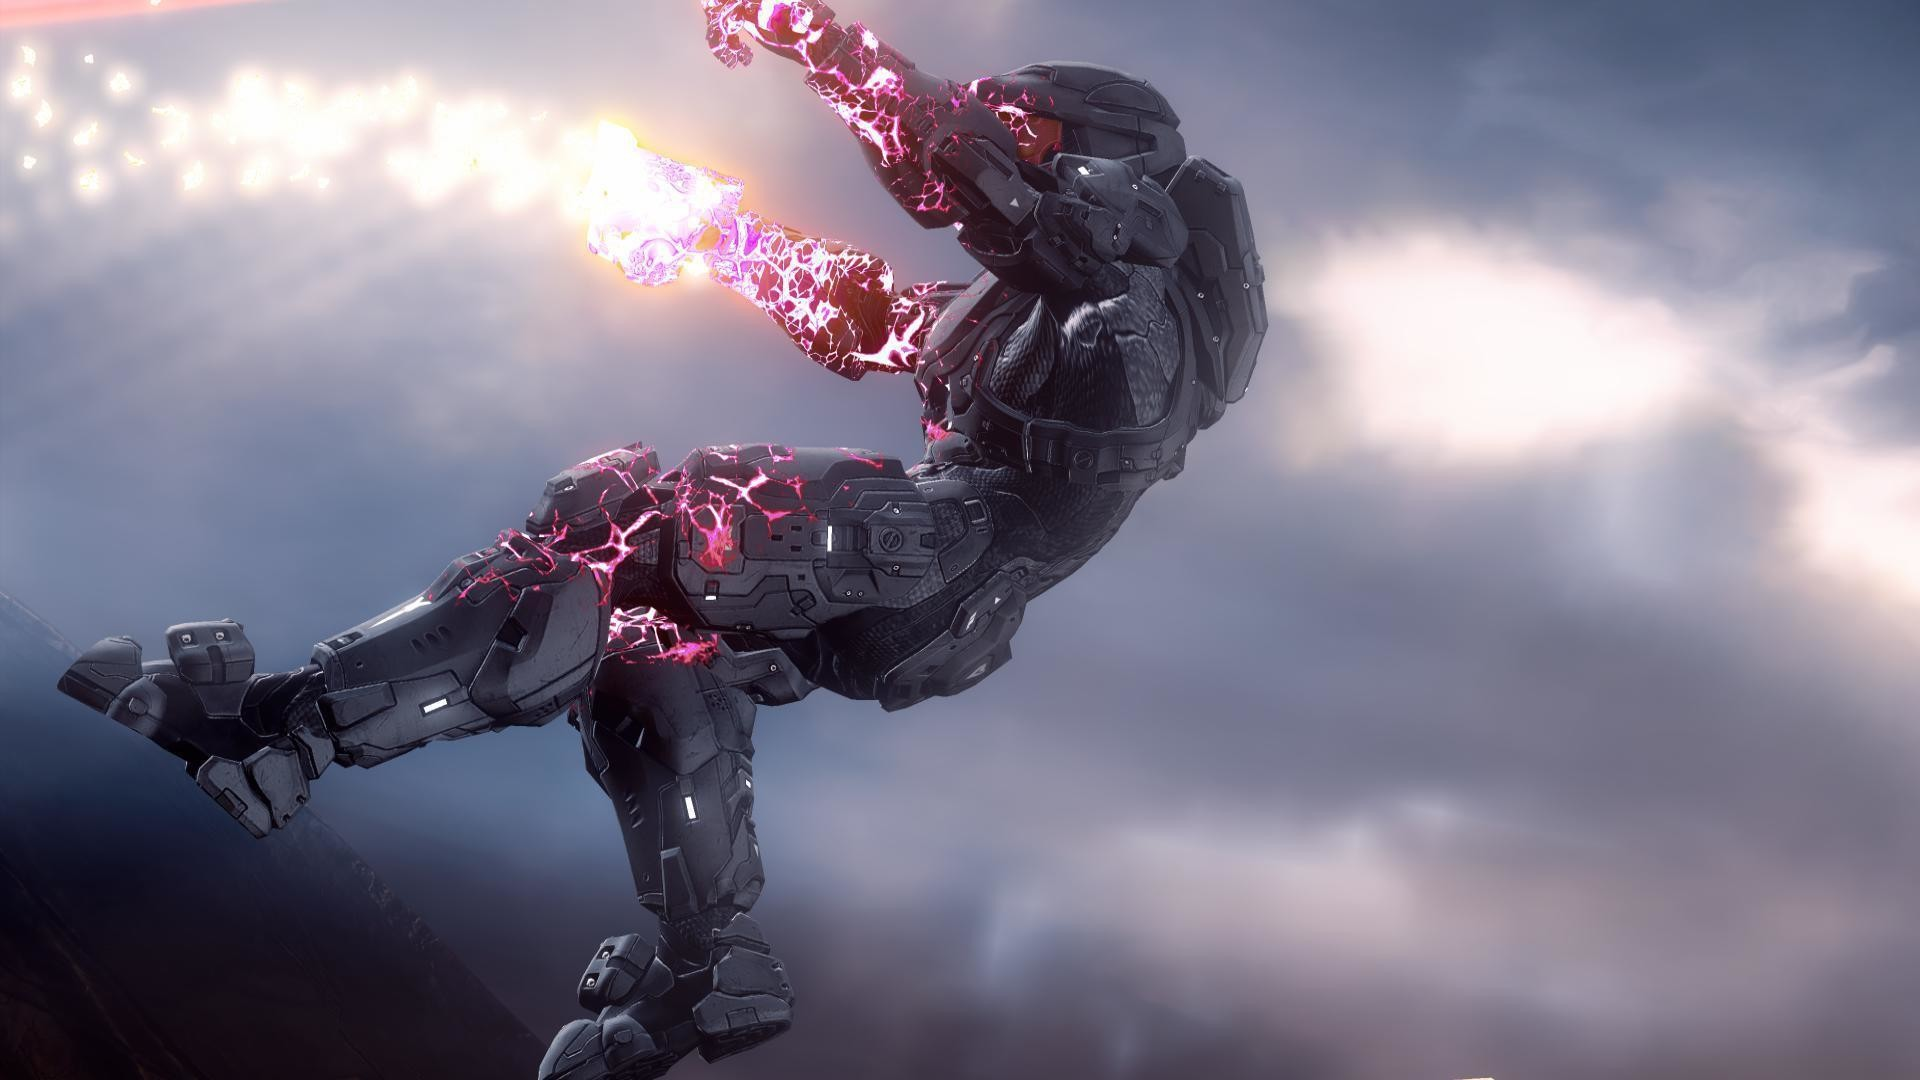 Res: 1920x1080, Wallpapers For > Halo Ring Wallpaper Hd